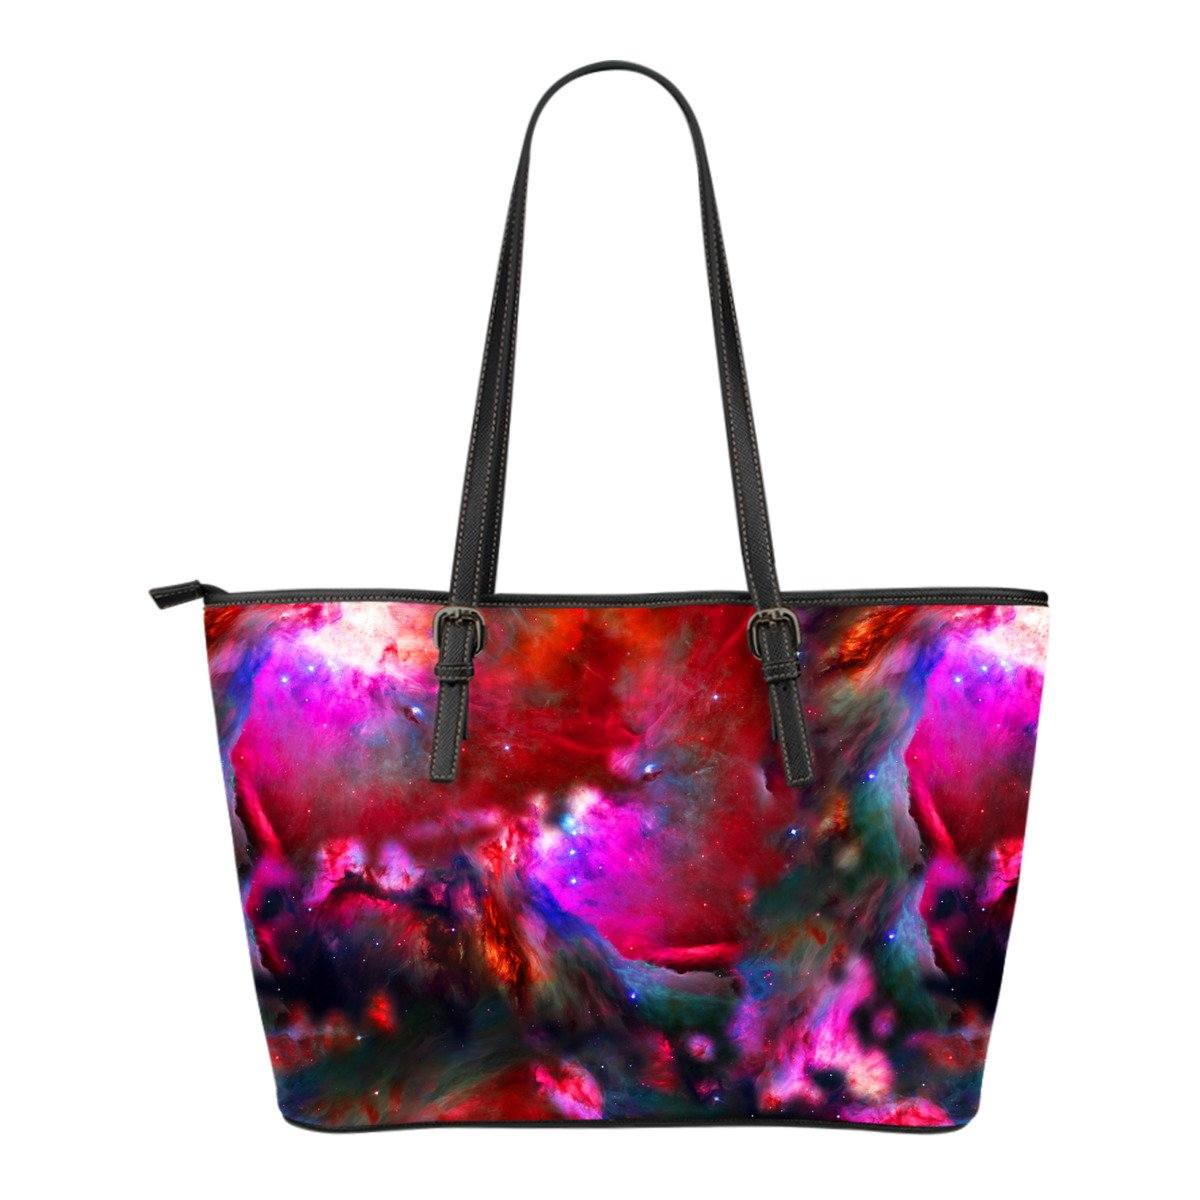 Imagine Galaxy Small Leather Tote